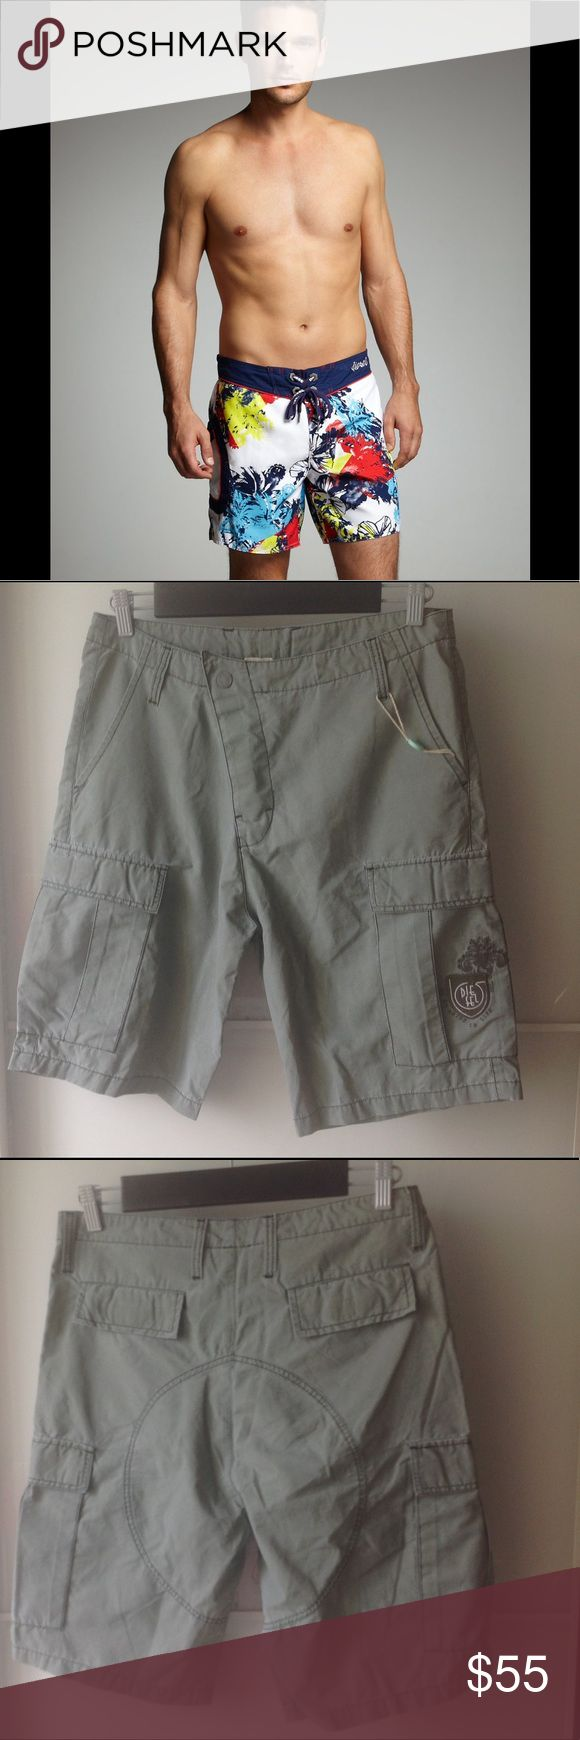 "Men's summer shorts. Great for summer and super light shorts.     78% cotton. Has a velcro and a snap for easy closing and 6 pockets. Wow!!! 👍🏻😁  16"" across the waist and 21"" long.  These are brand new and never been worn with all the tags. Color is military green/grey.  Please bundle and save! 😉 Diesel Shorts Cargo"